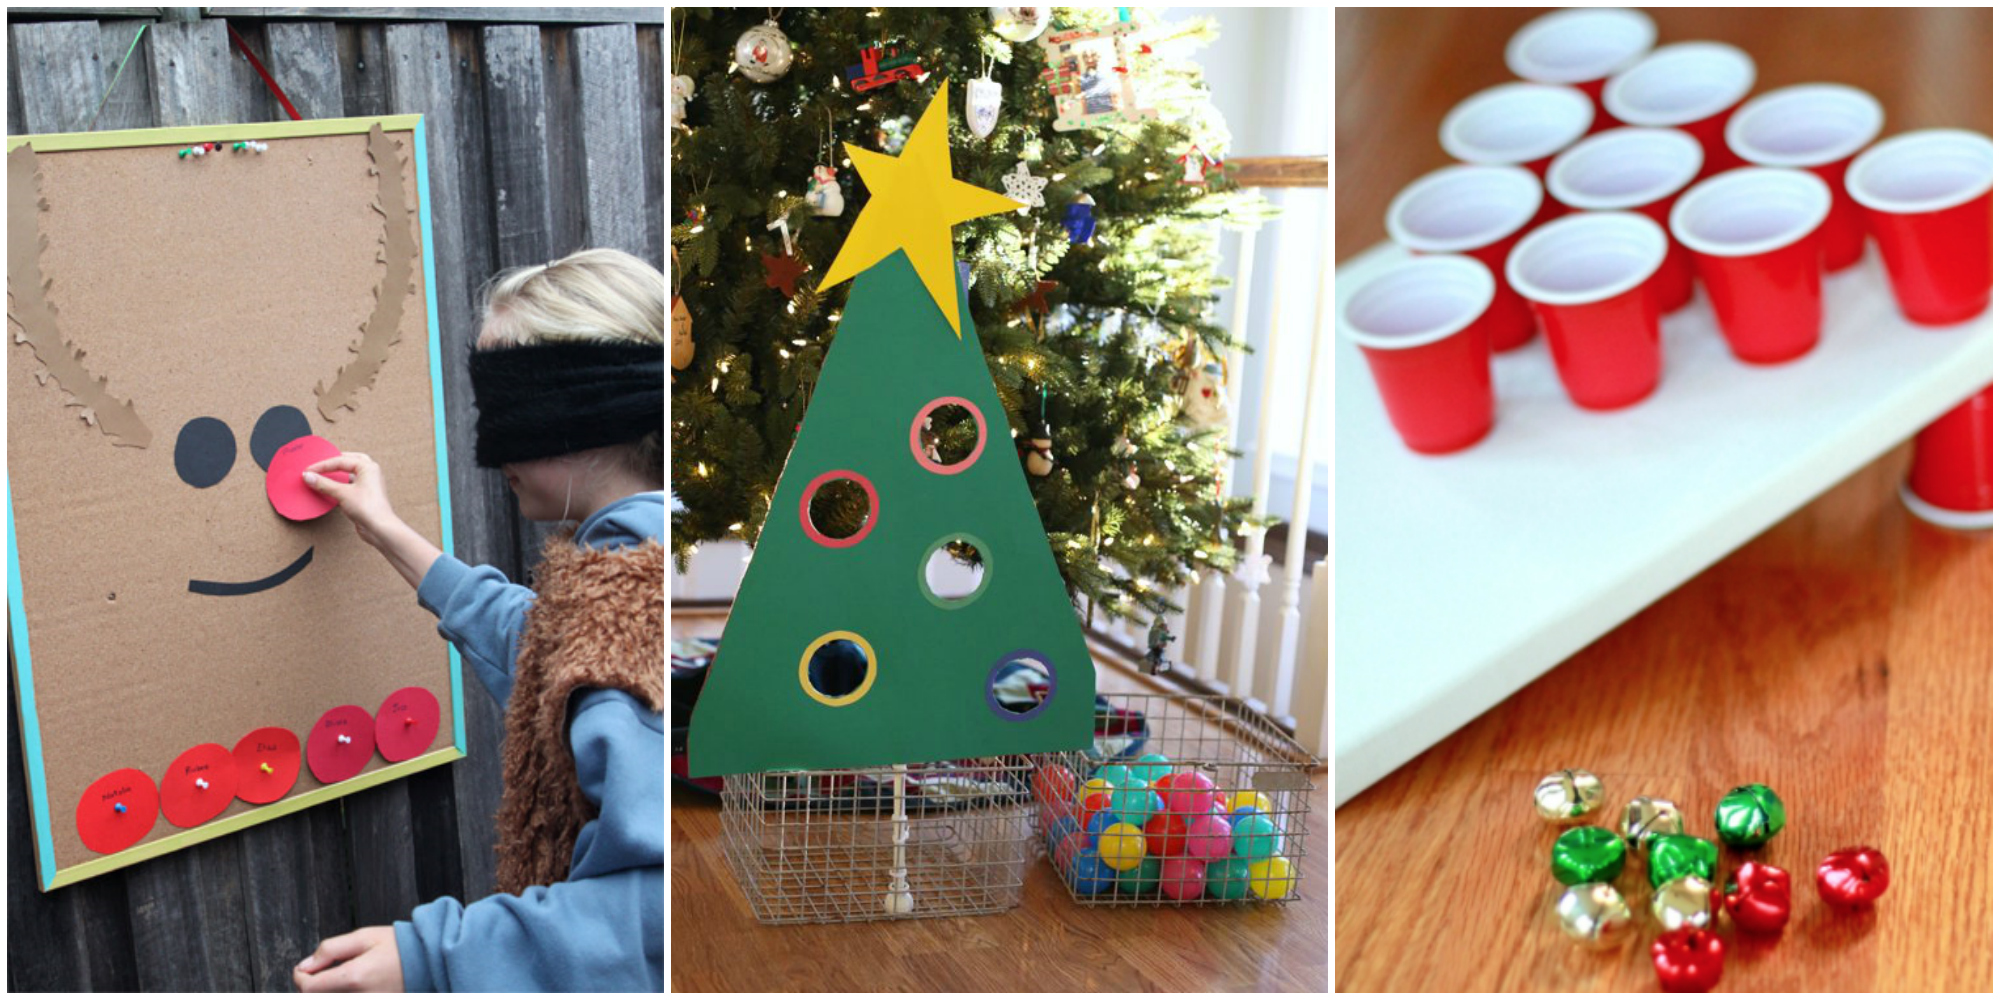 20 Fun Christmas Games to Play With the Family